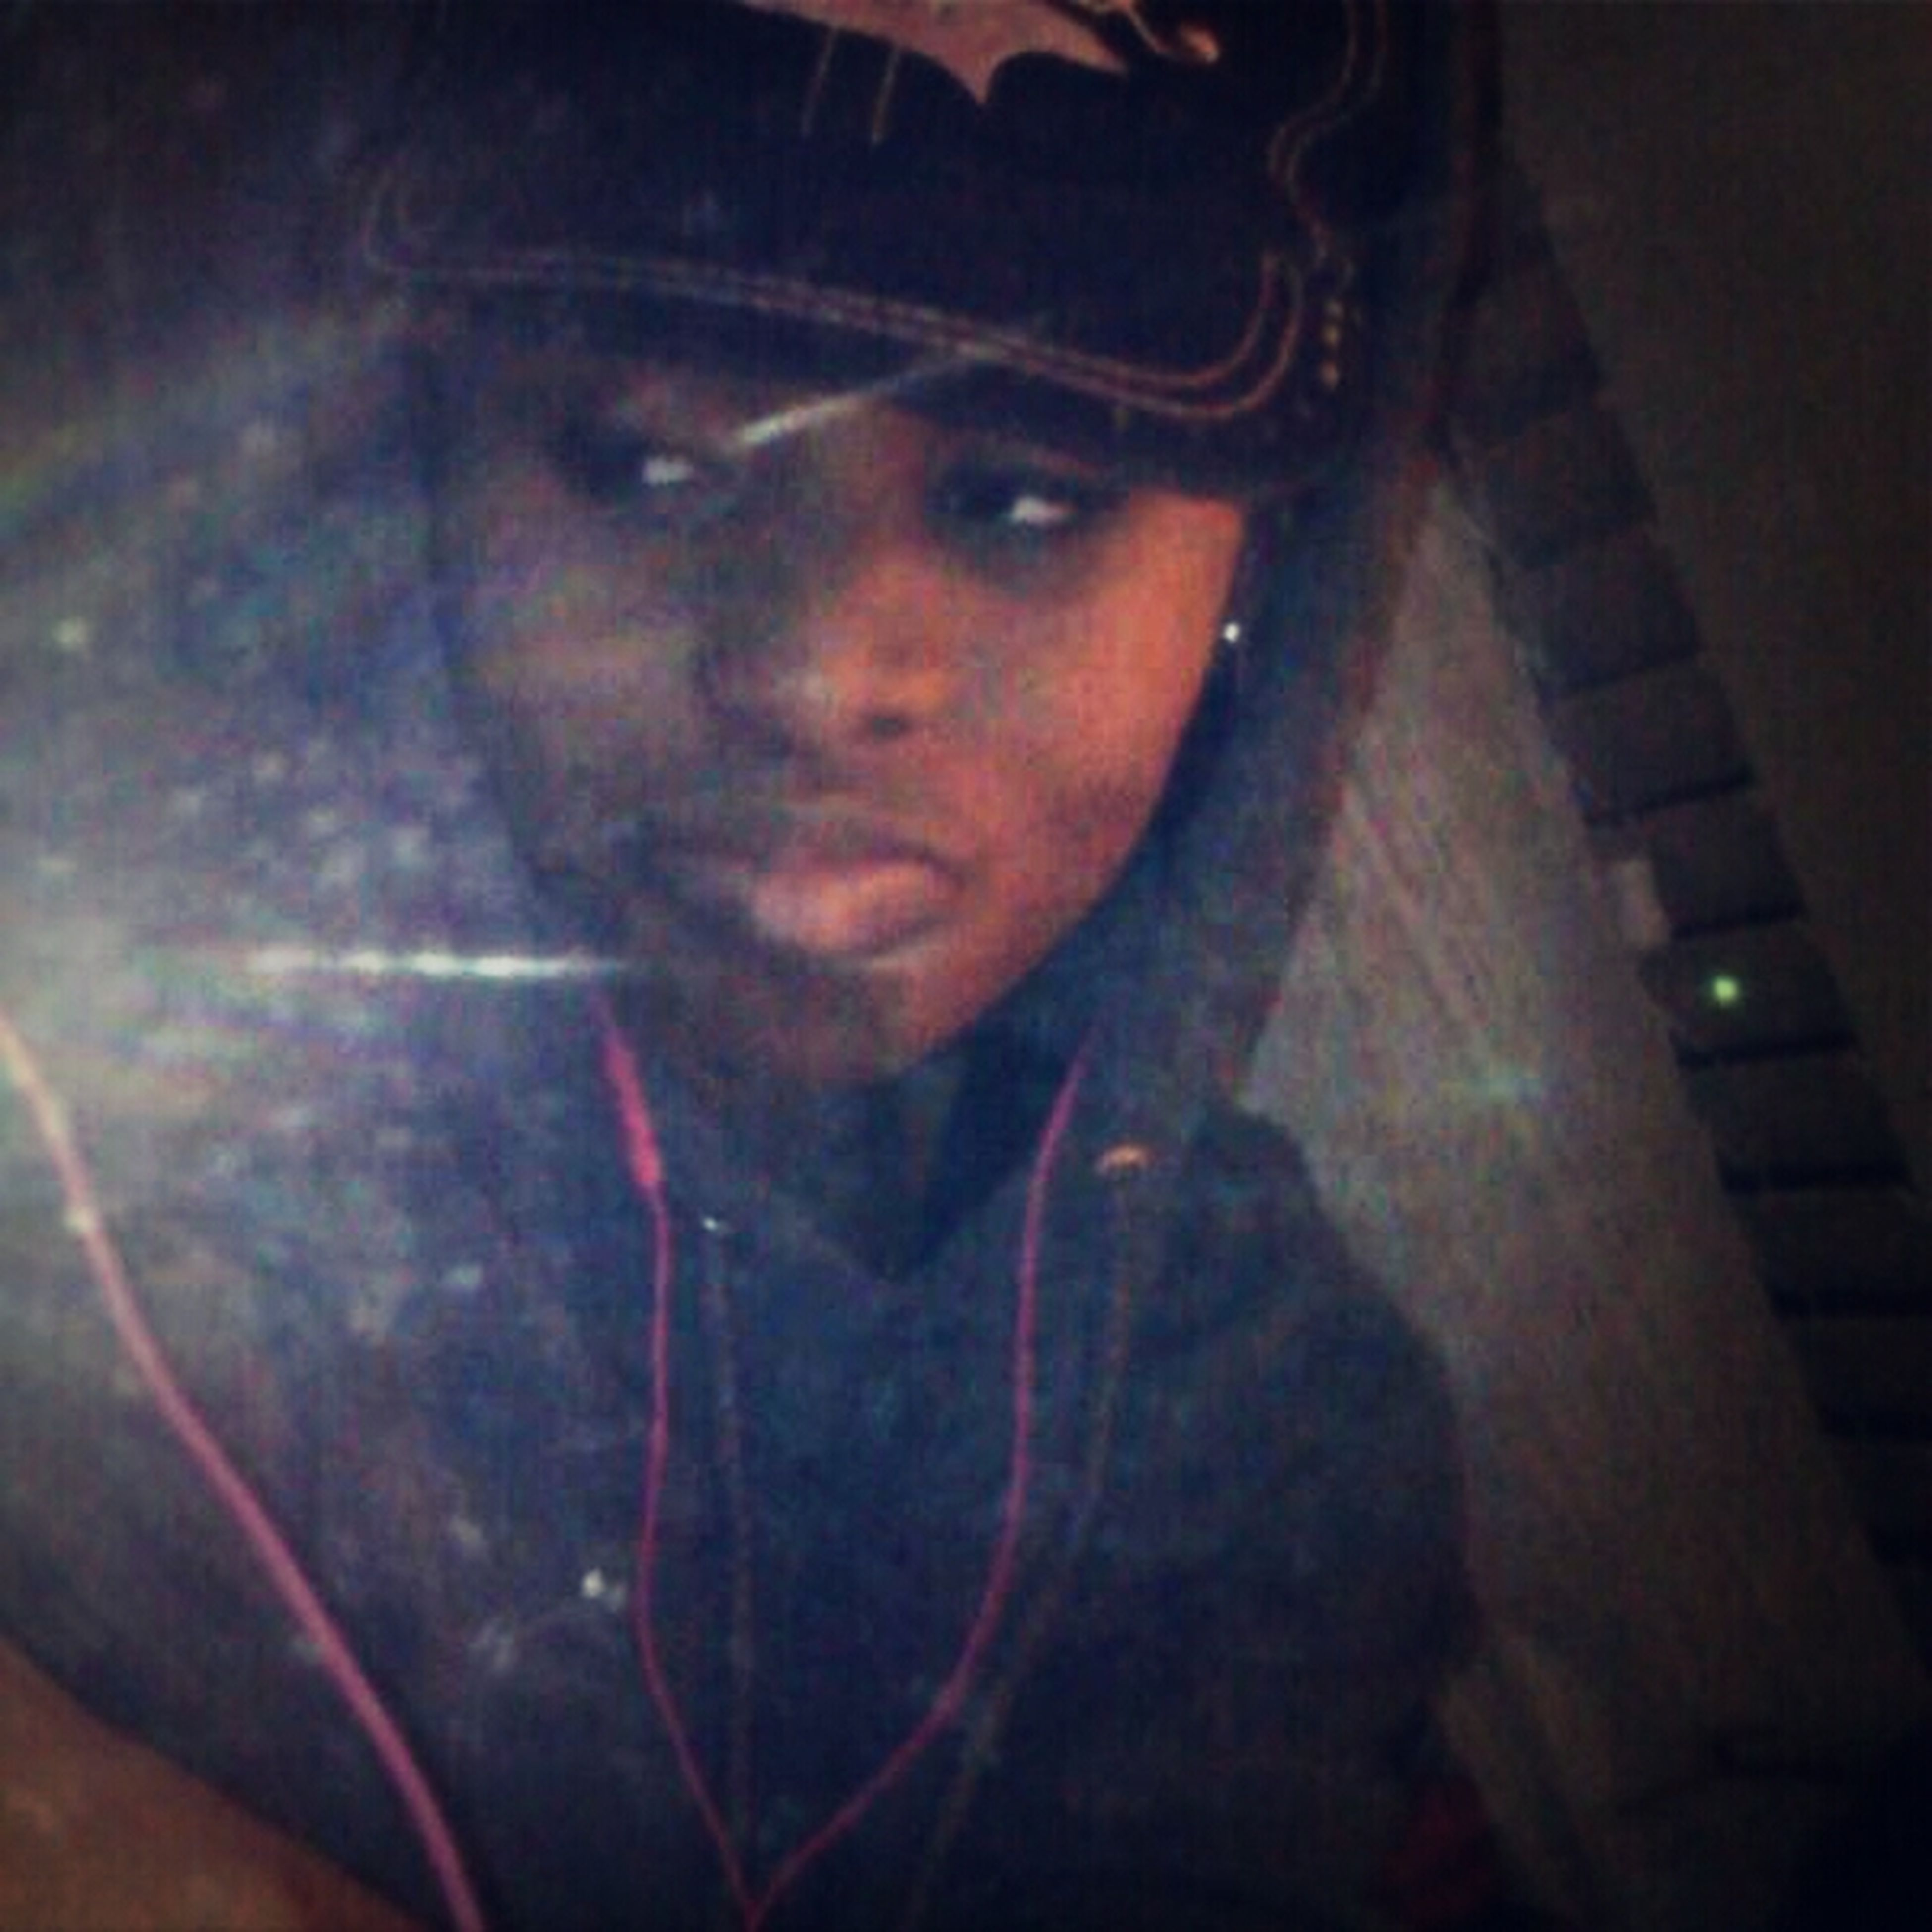 Switch It Up C(: Po It Up,  Po It Up, Thats How We Ball Out